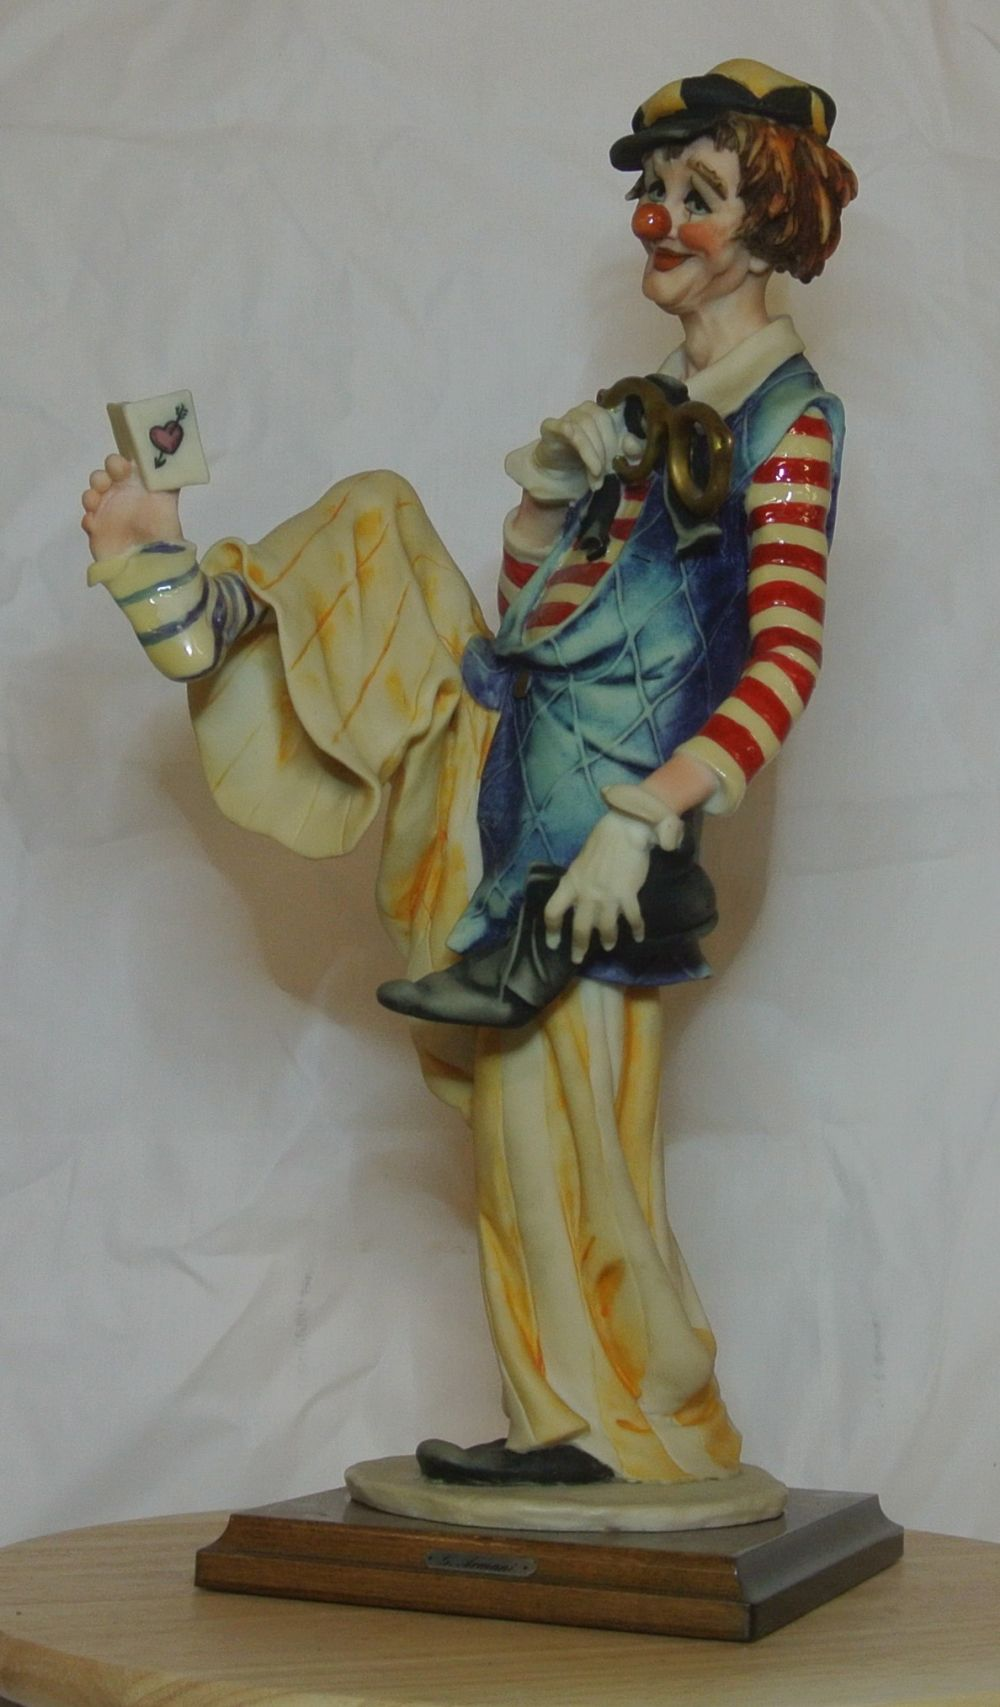 A Capodimonte figure of a clown reading a book held between his toes